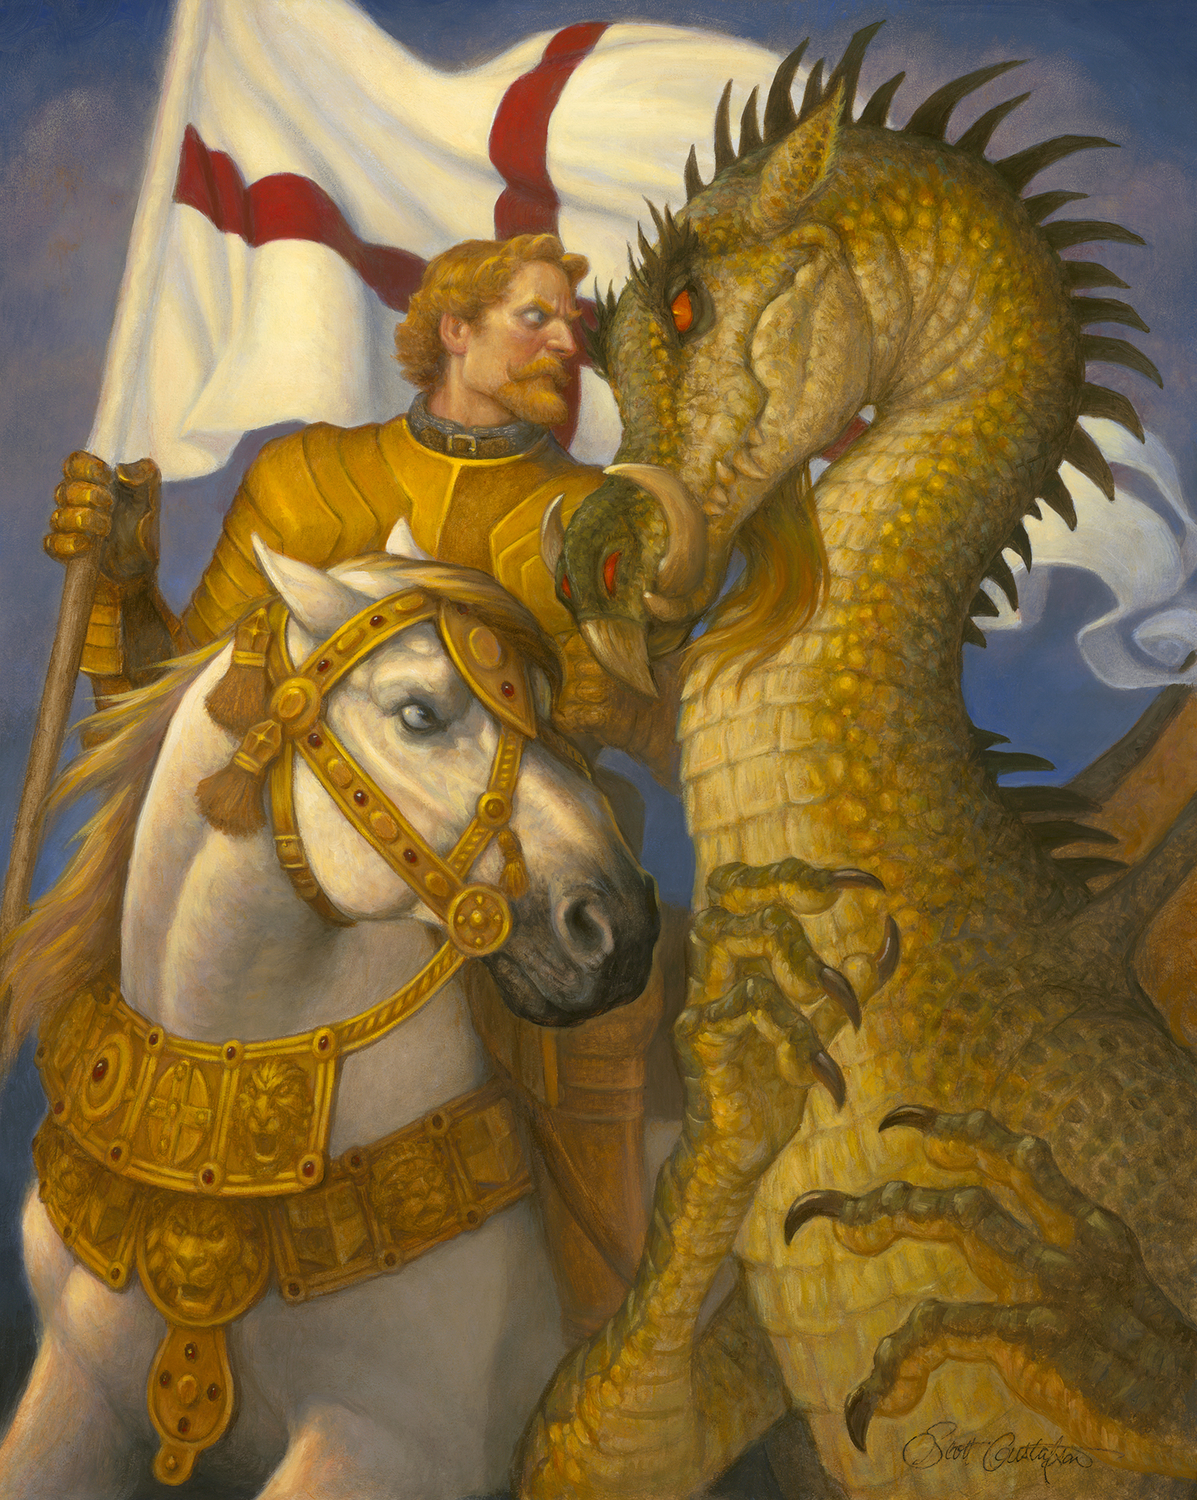 St. George and the Dragon Artwork by Scott Gustafson